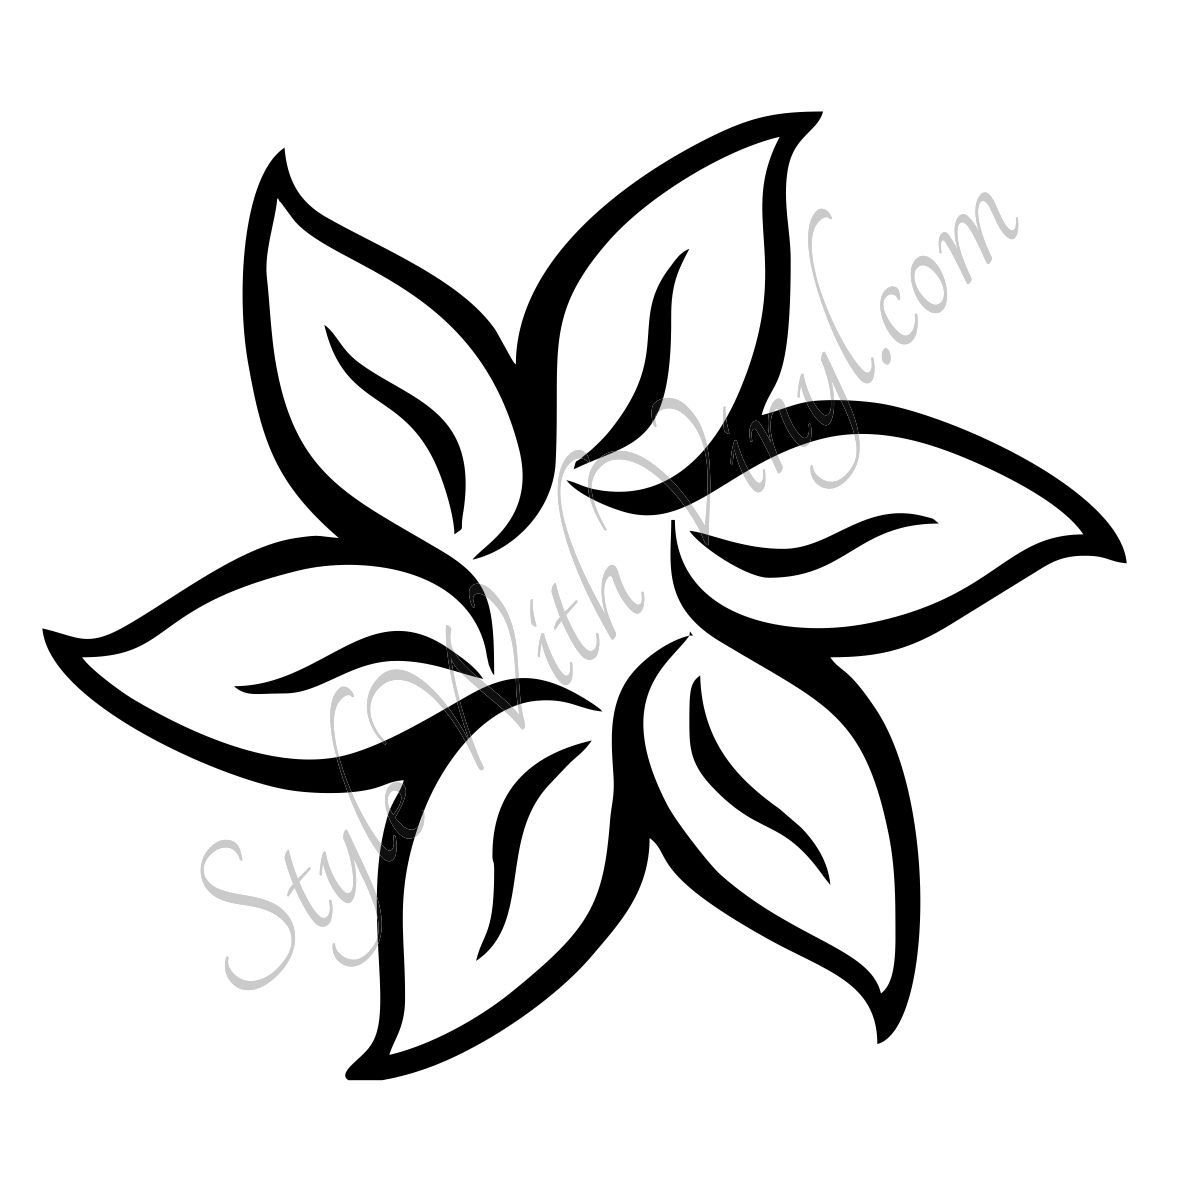 1200x1200 flower basic drawing basic flower drawing draw easy flower